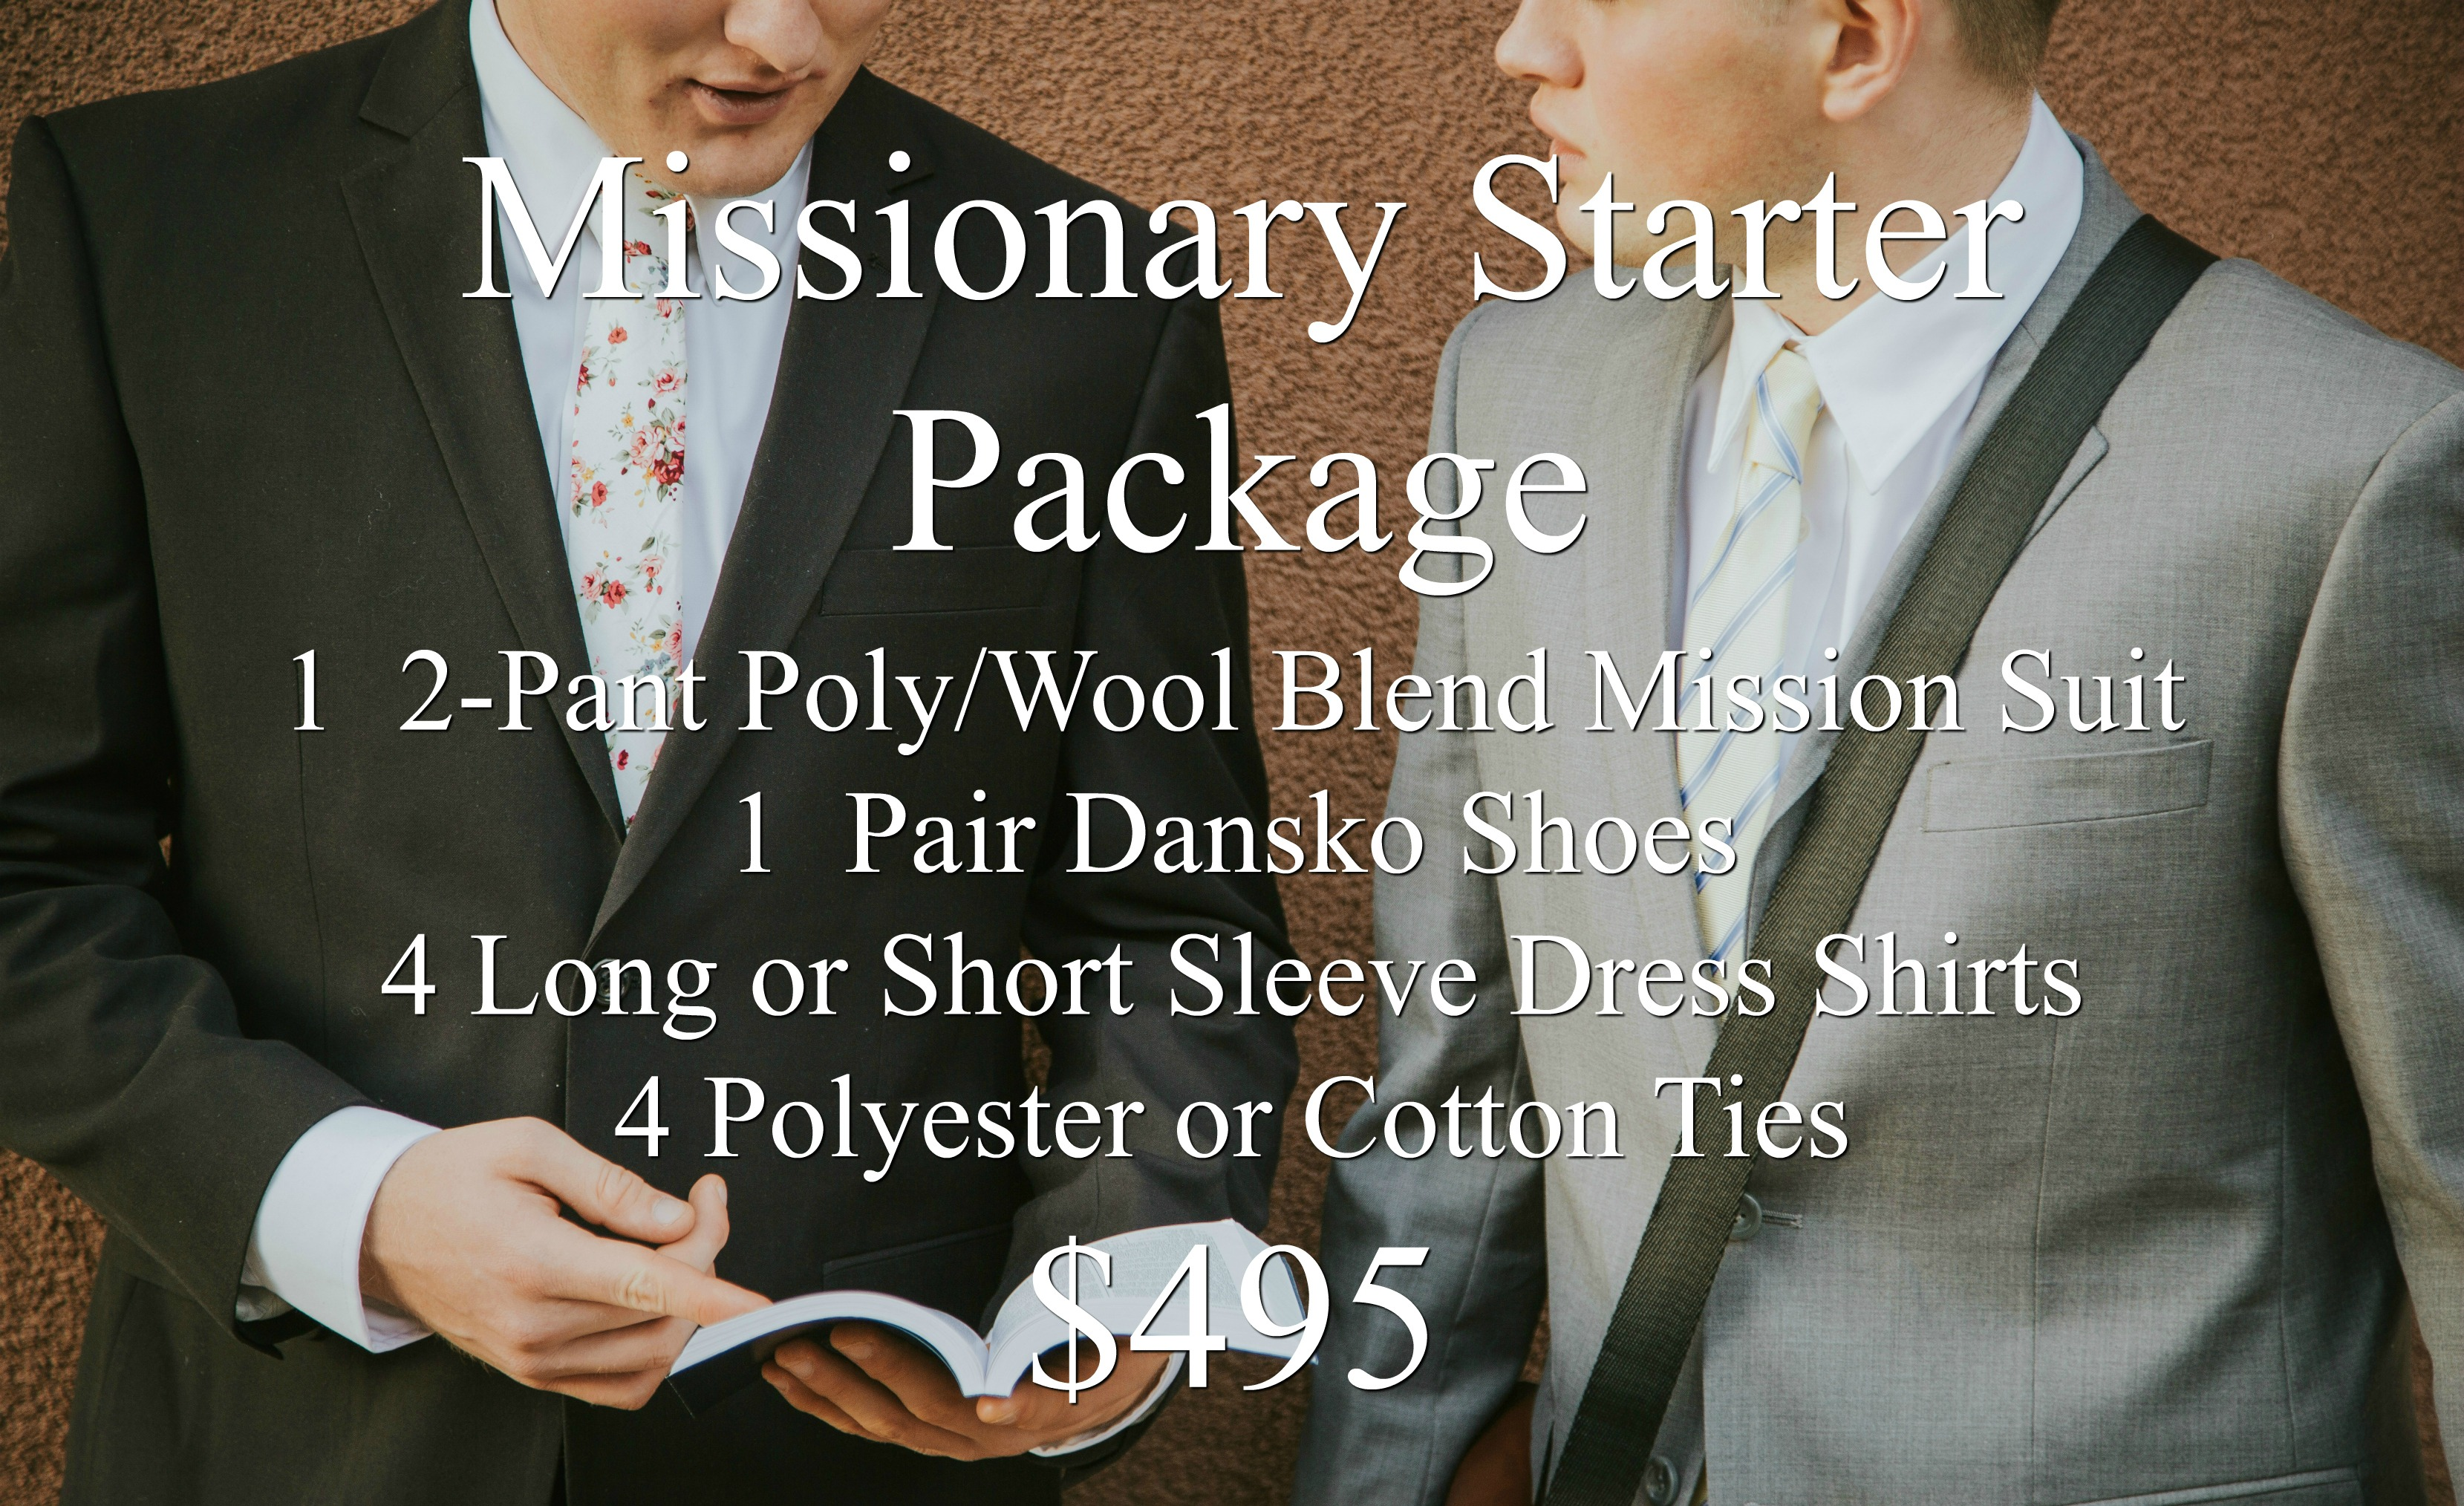 missionarymall missionary starter package